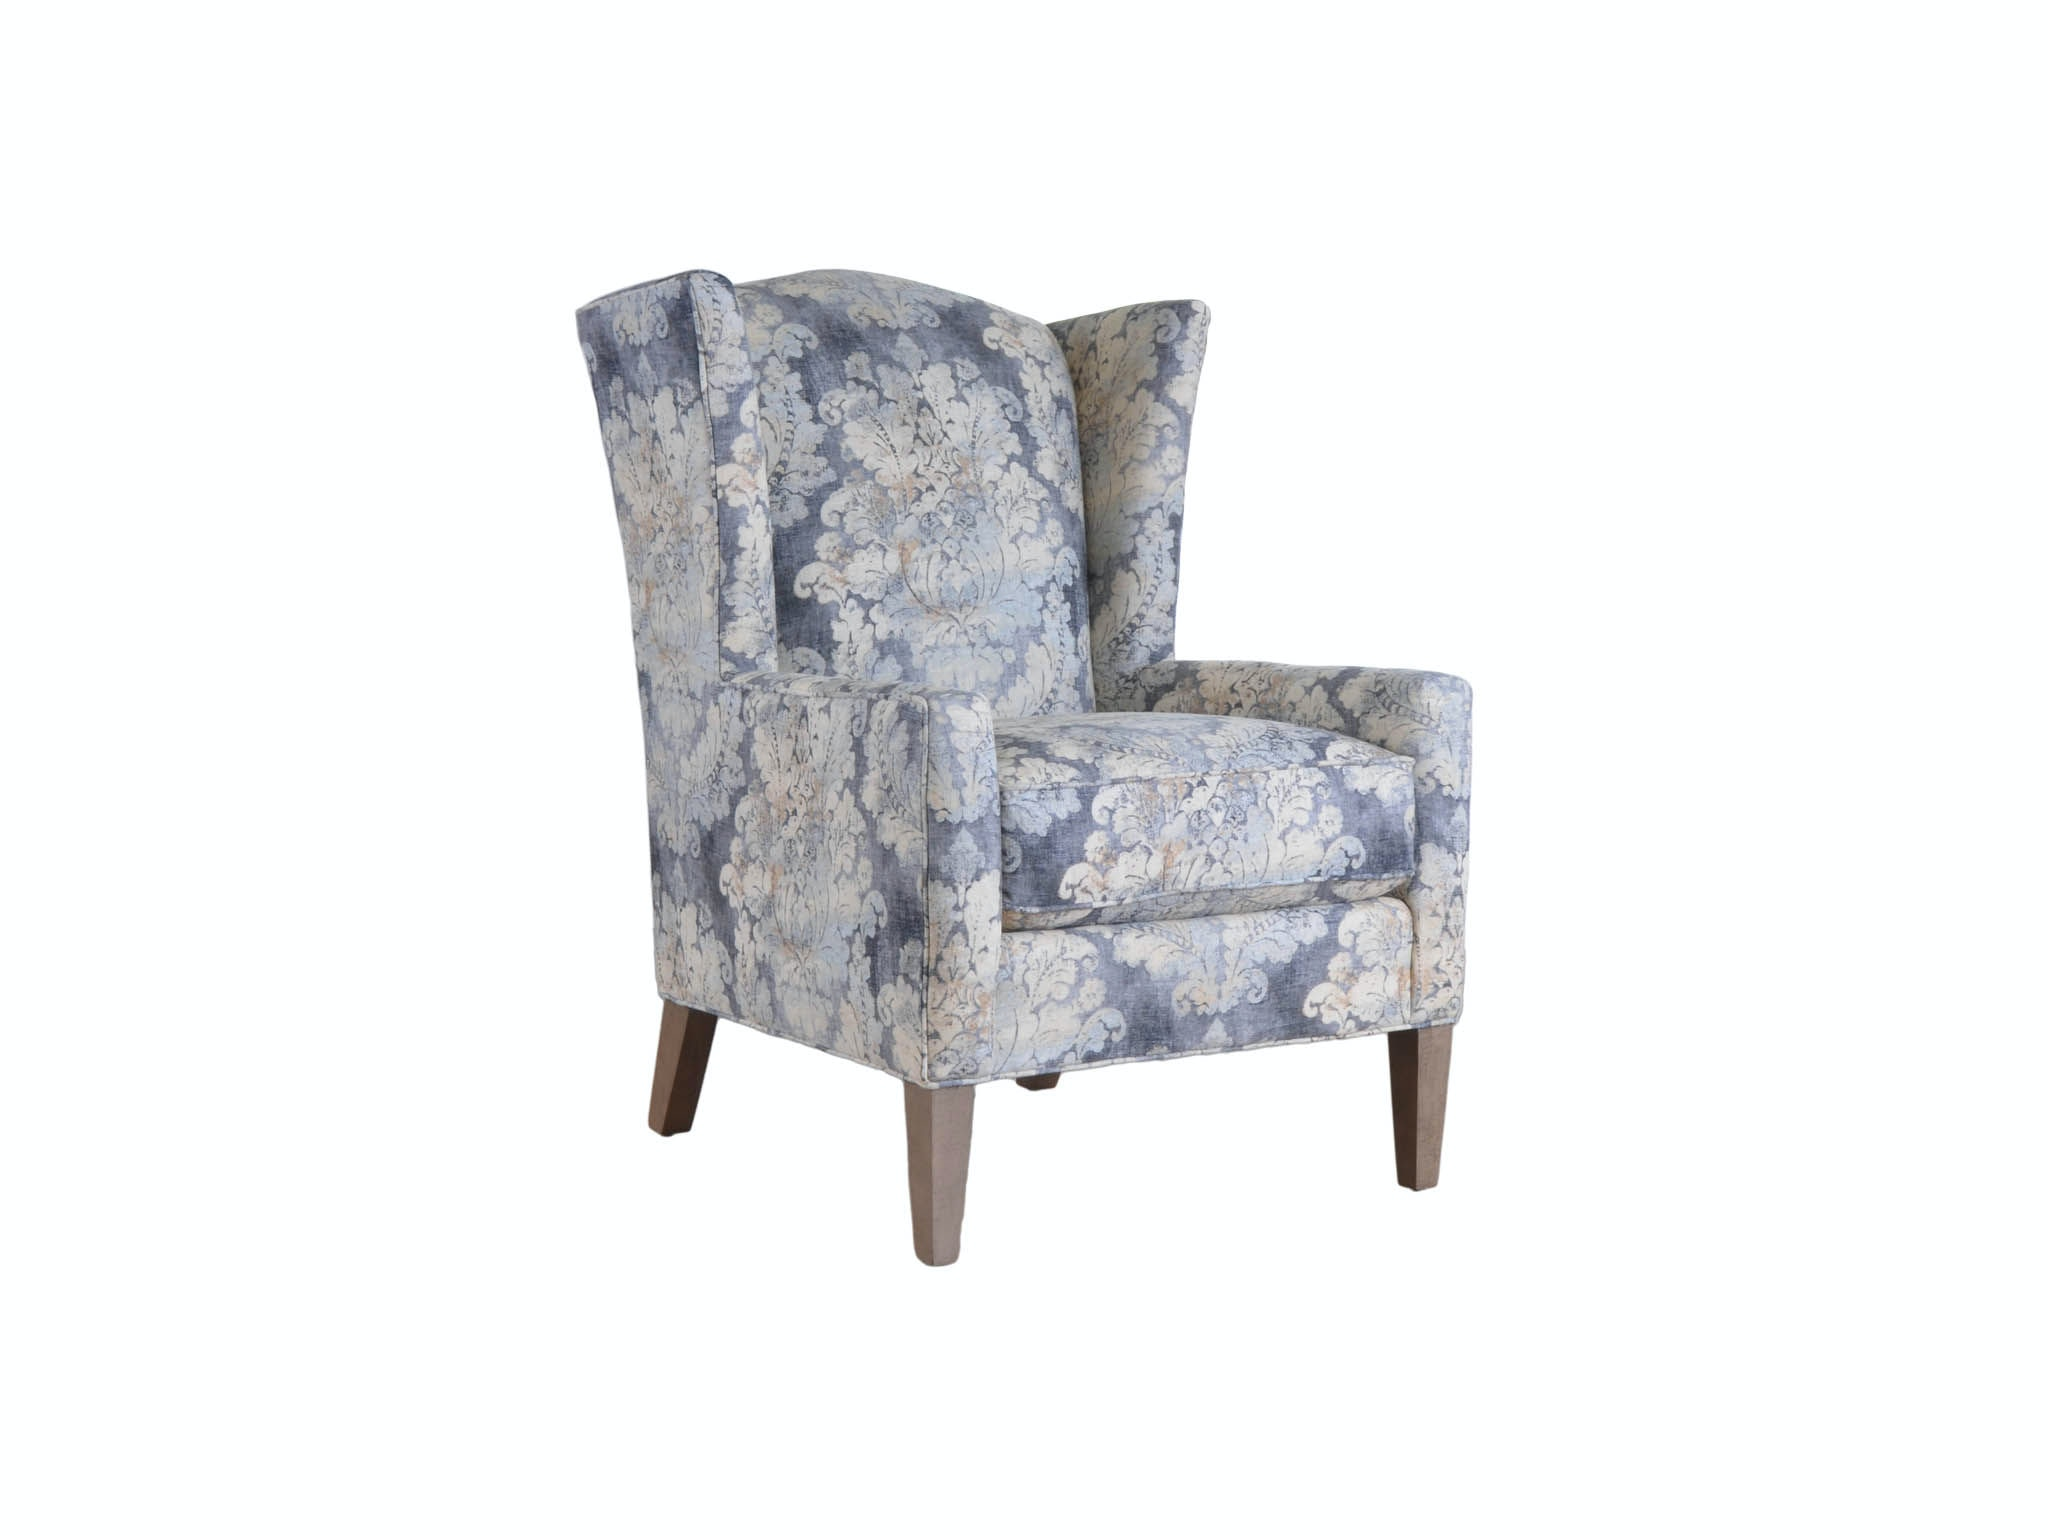 Ordinaire Craftmaster Chair 032410